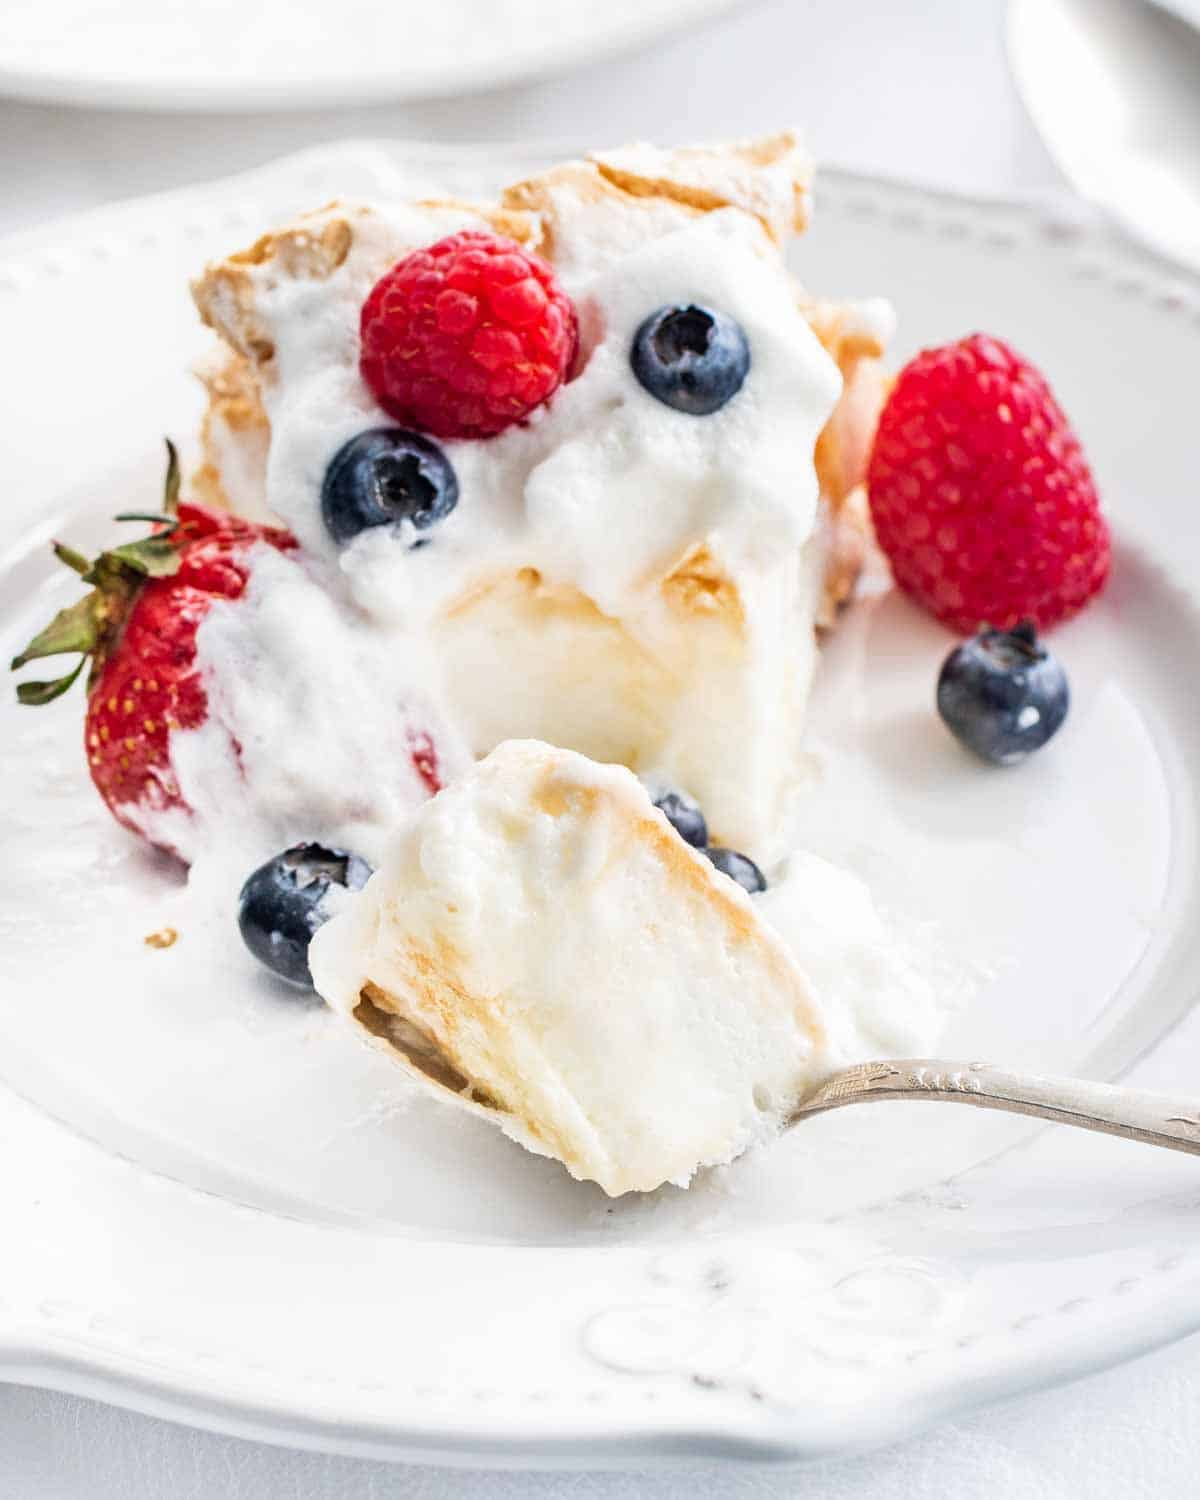 a slice of pavlova on a plate garnished with berries and a spoon holding a piece of it